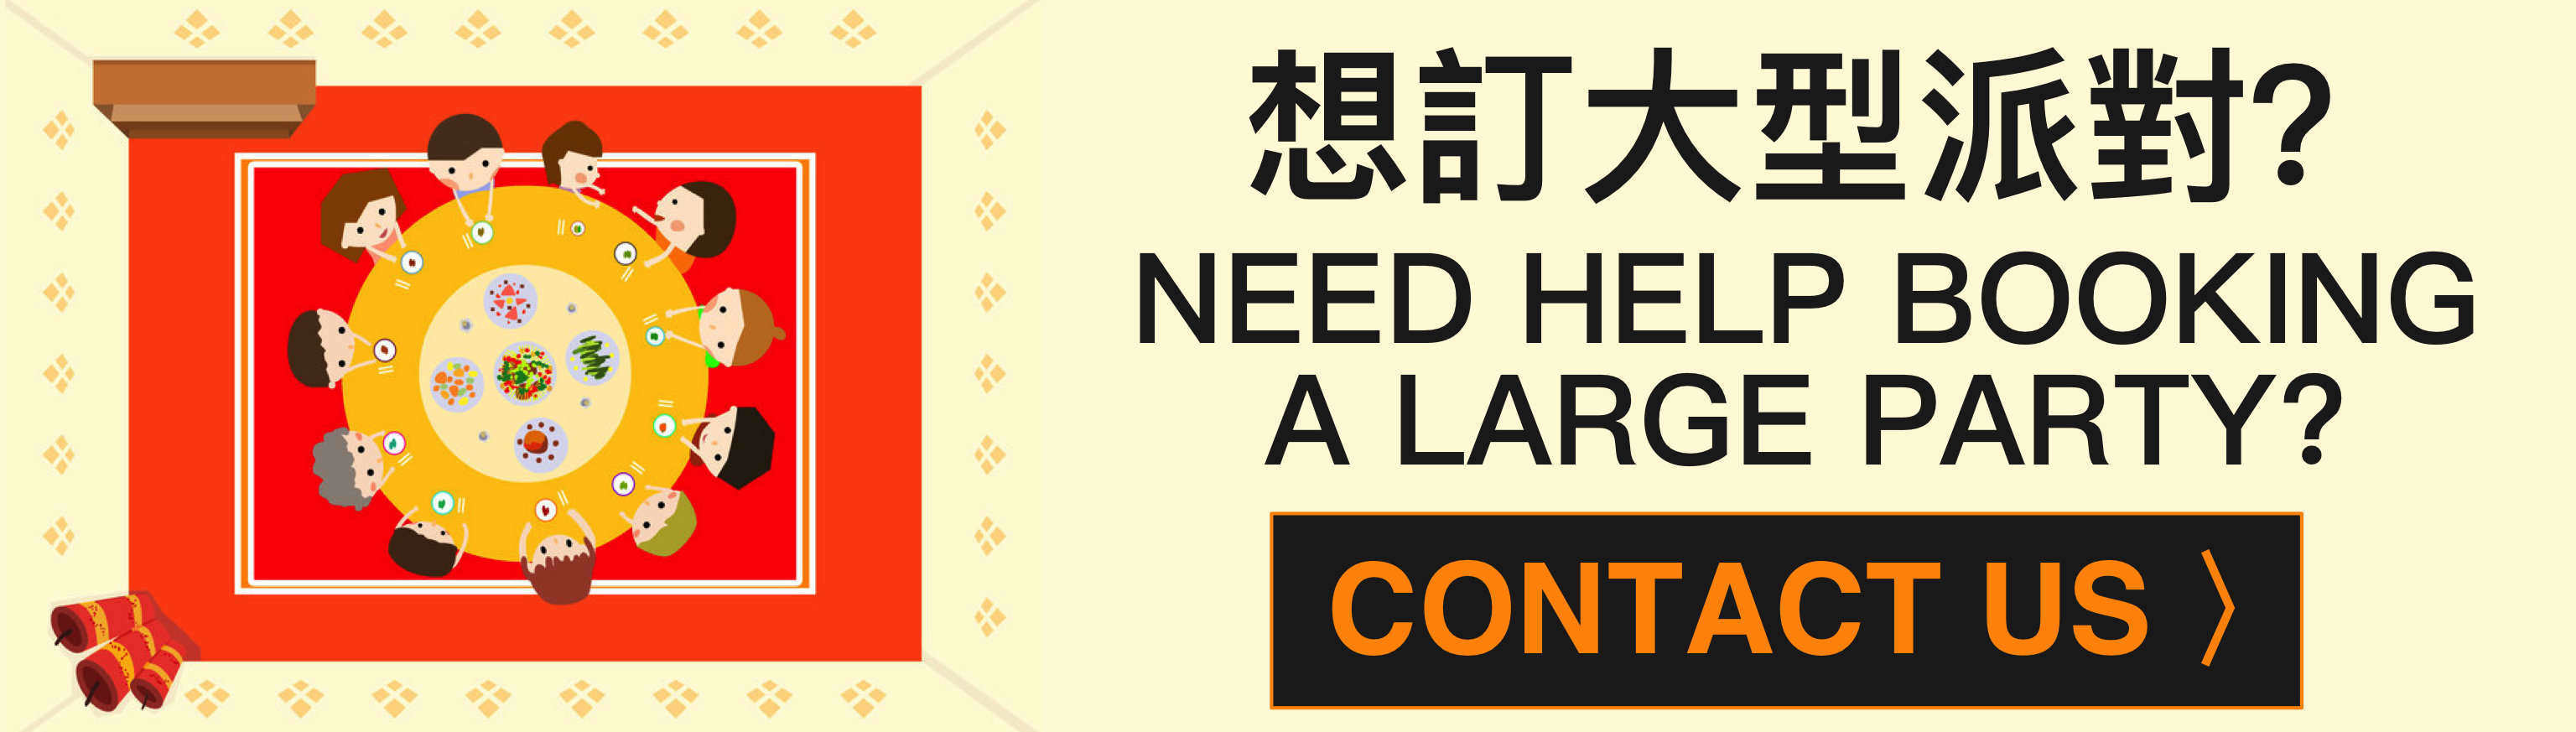 rsz_large_party_banner_5_bilingual (1)